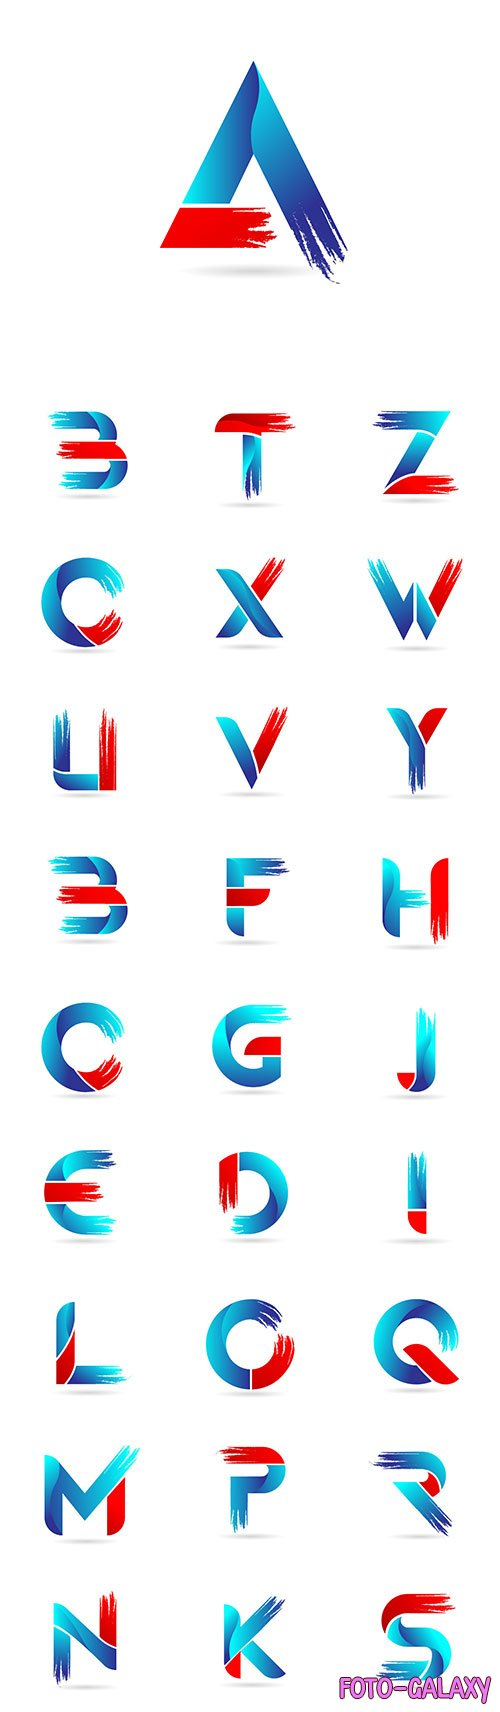 Blue red alphabet letter with grunge brush pattern for company logo icon